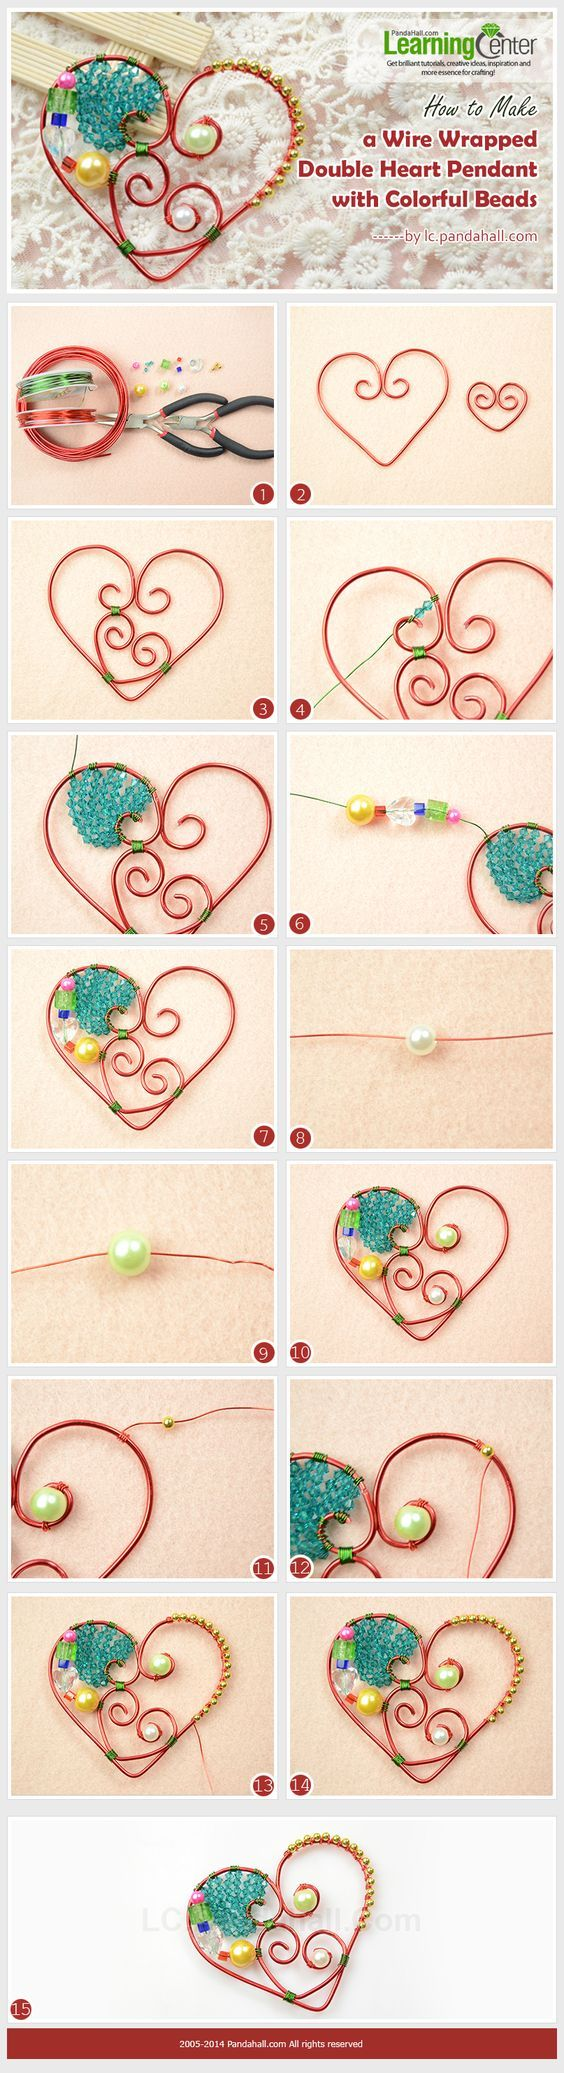 How to Make a Wire Wrapped Double Heart Pendant with Colorful Beads